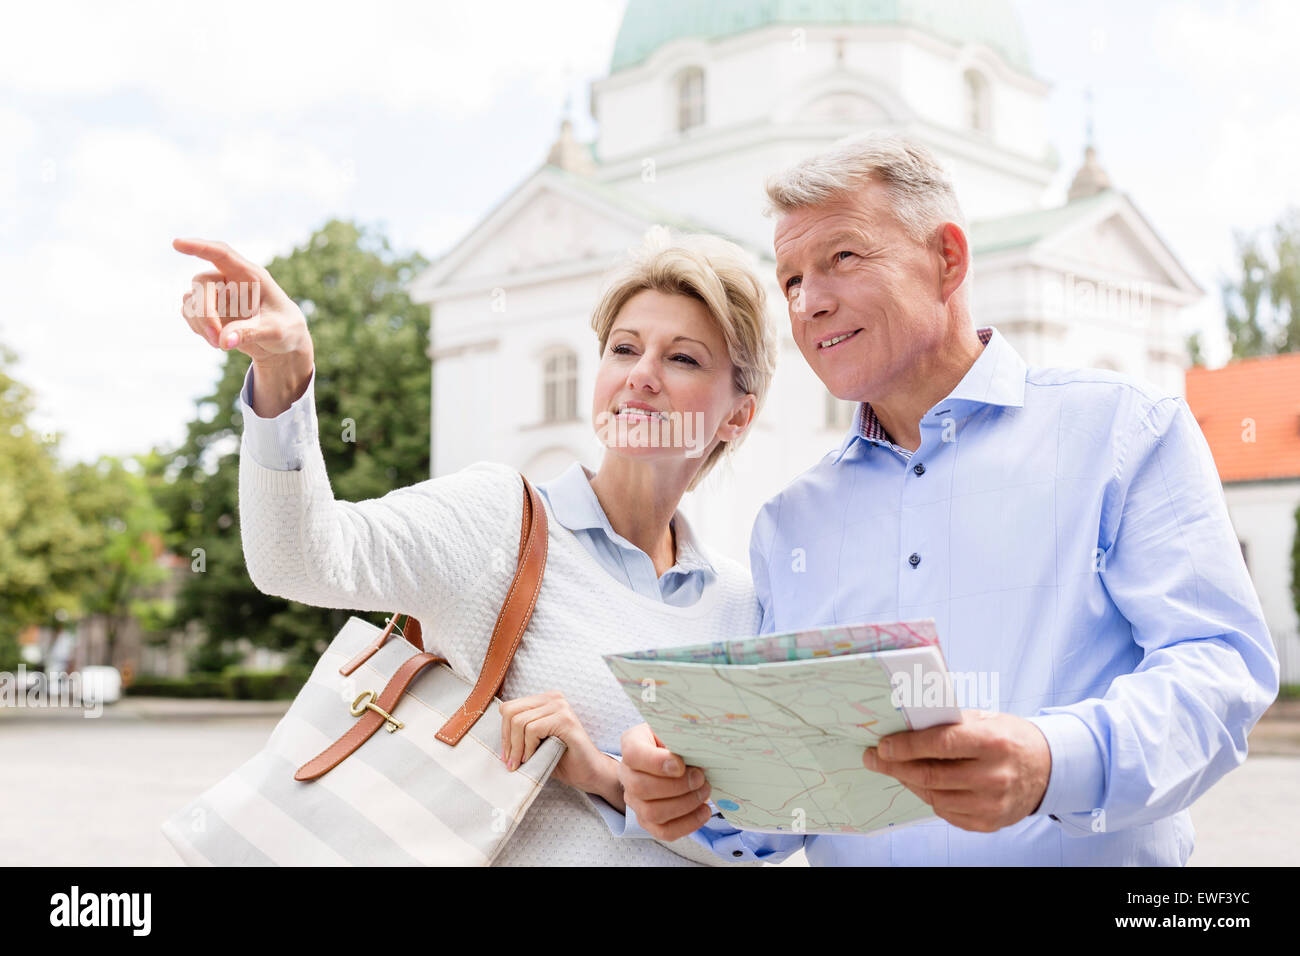 Middle-aged woman showing something to man holding map outdoors - Stock Image